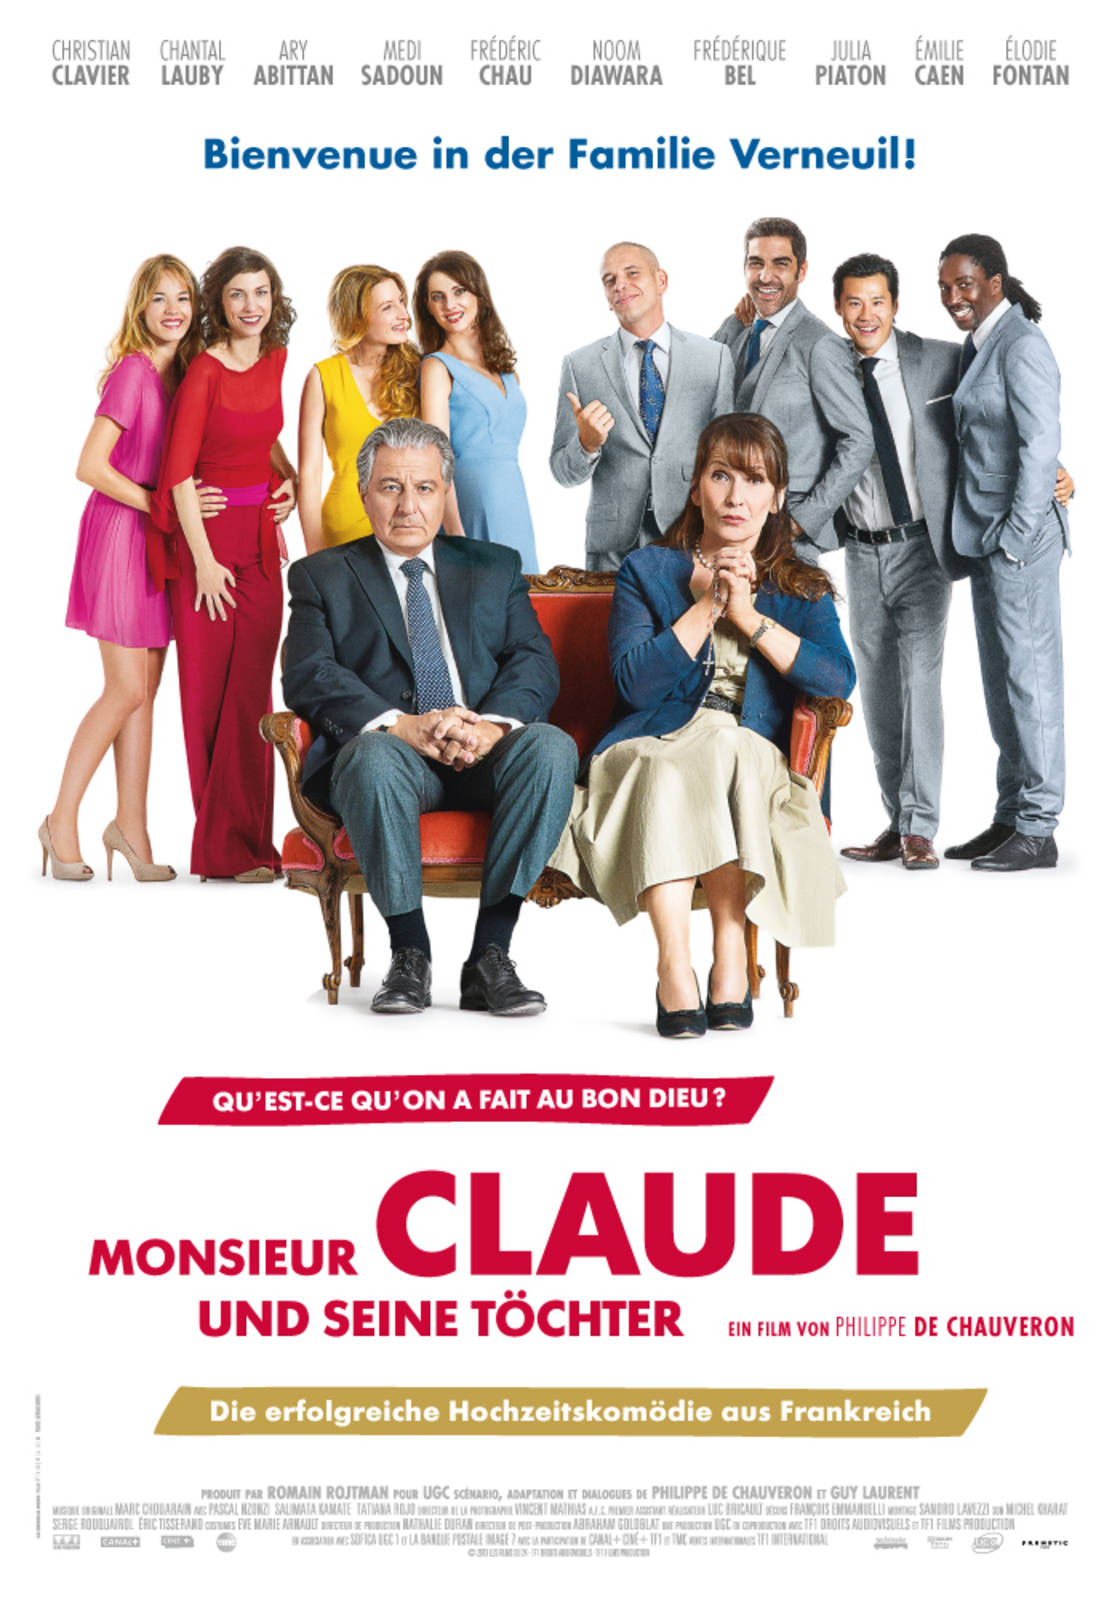 Monsieur Claude 2 Trailer Deutsch